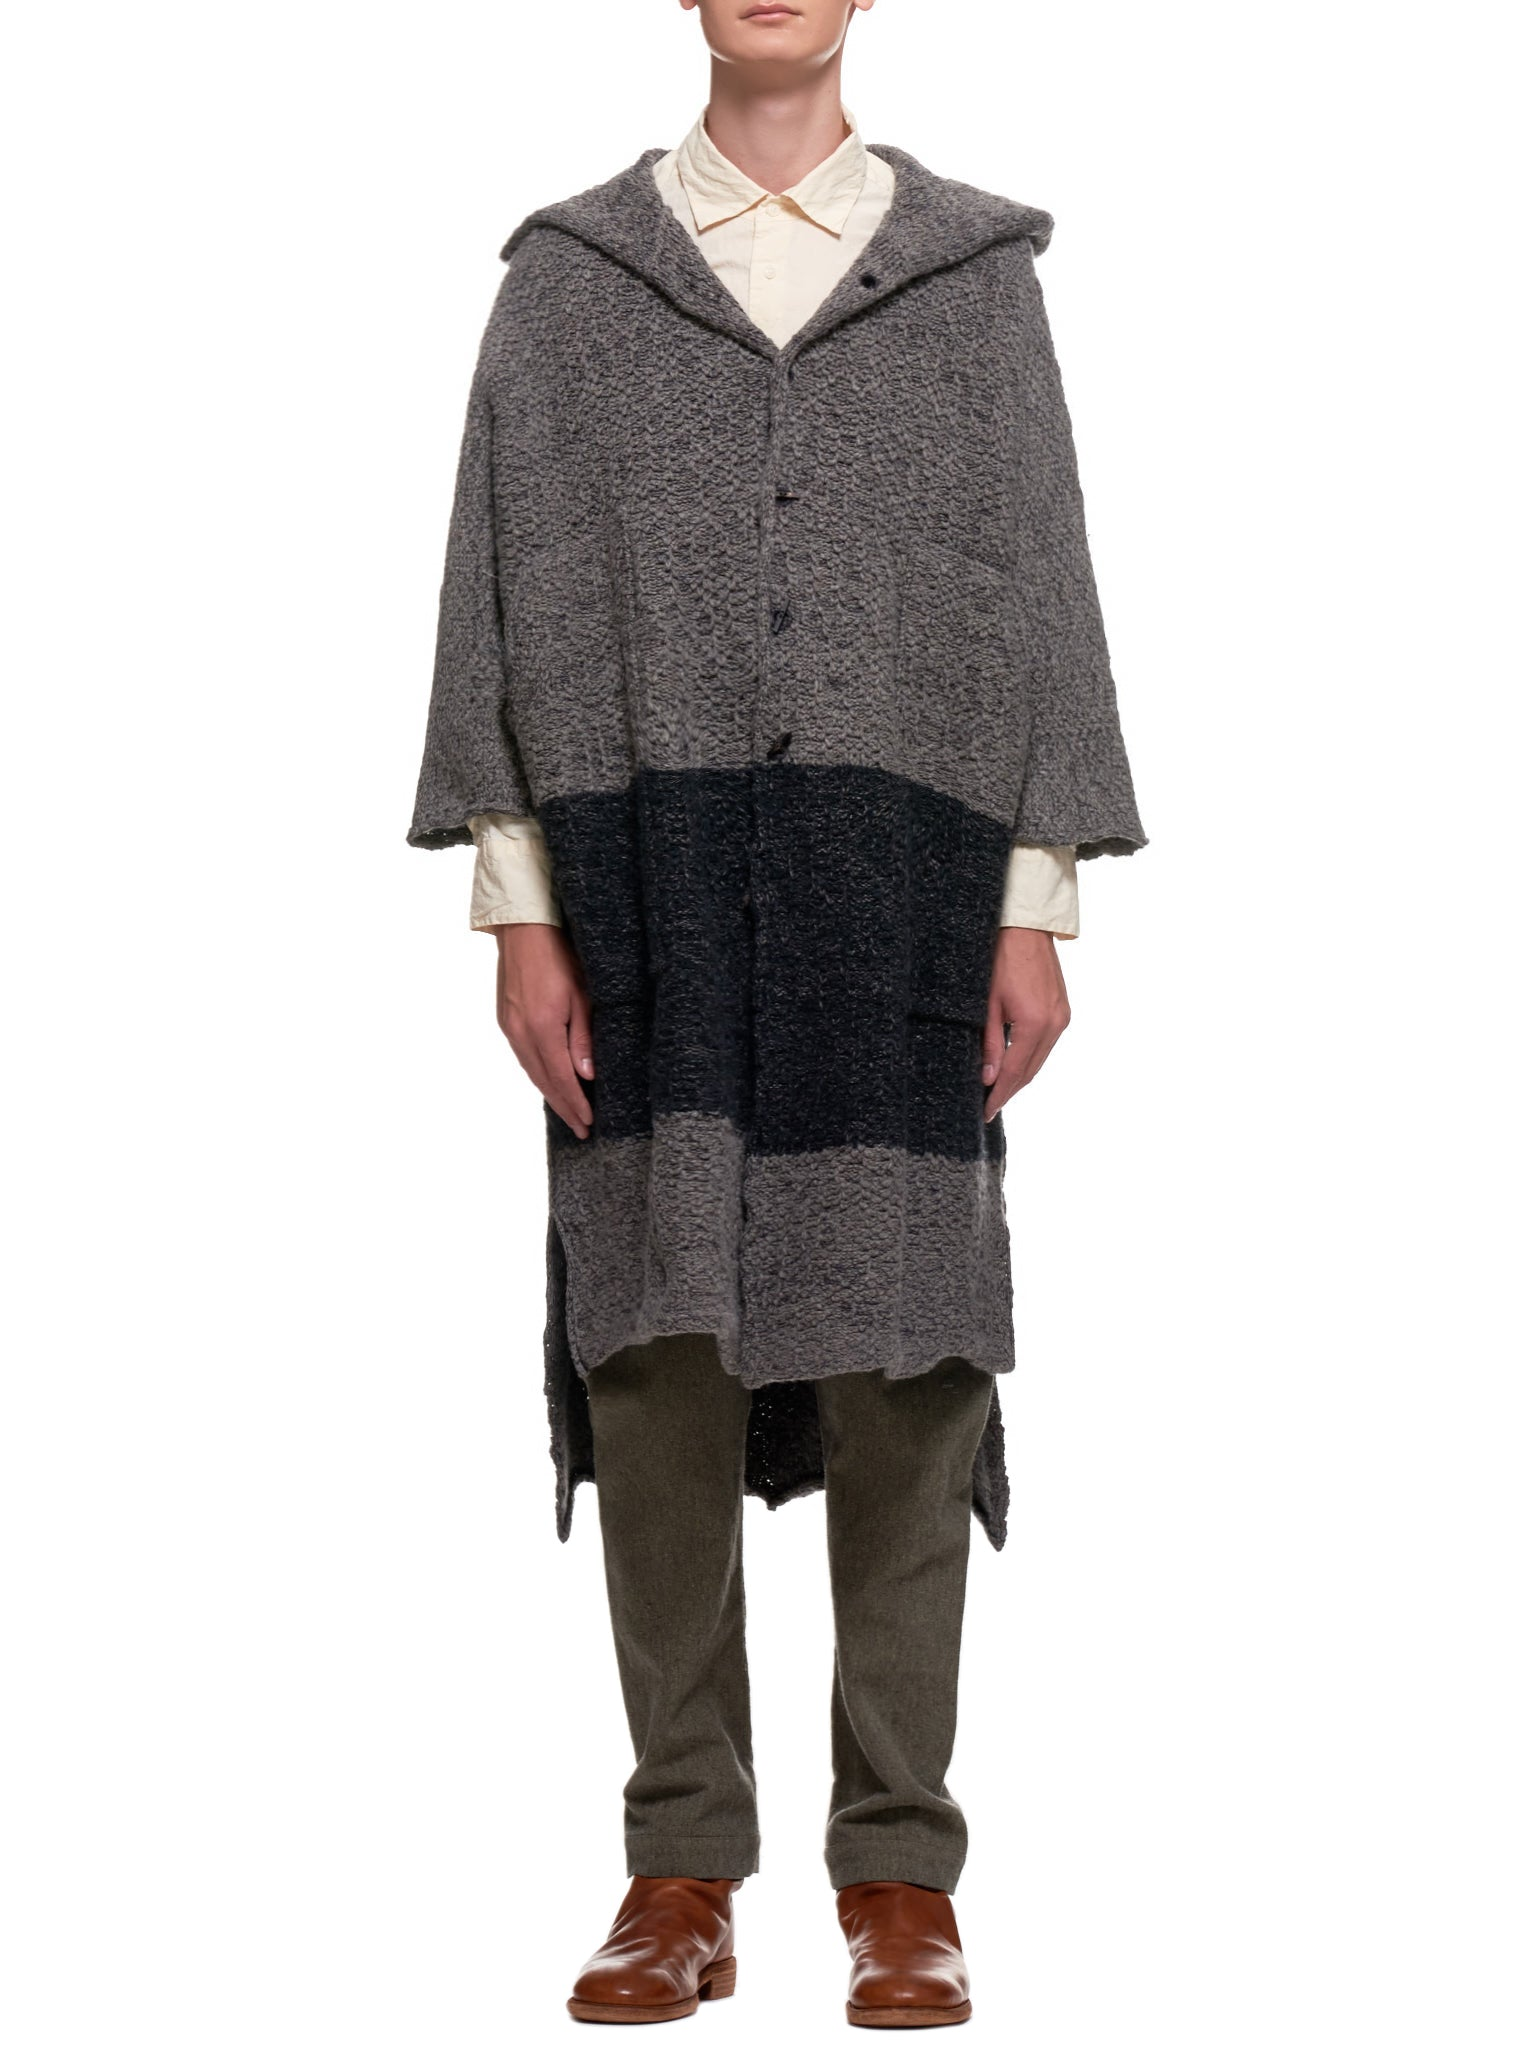 Oversized Archer's Coat (A66-1855-GRAY-ANTHRACITE)